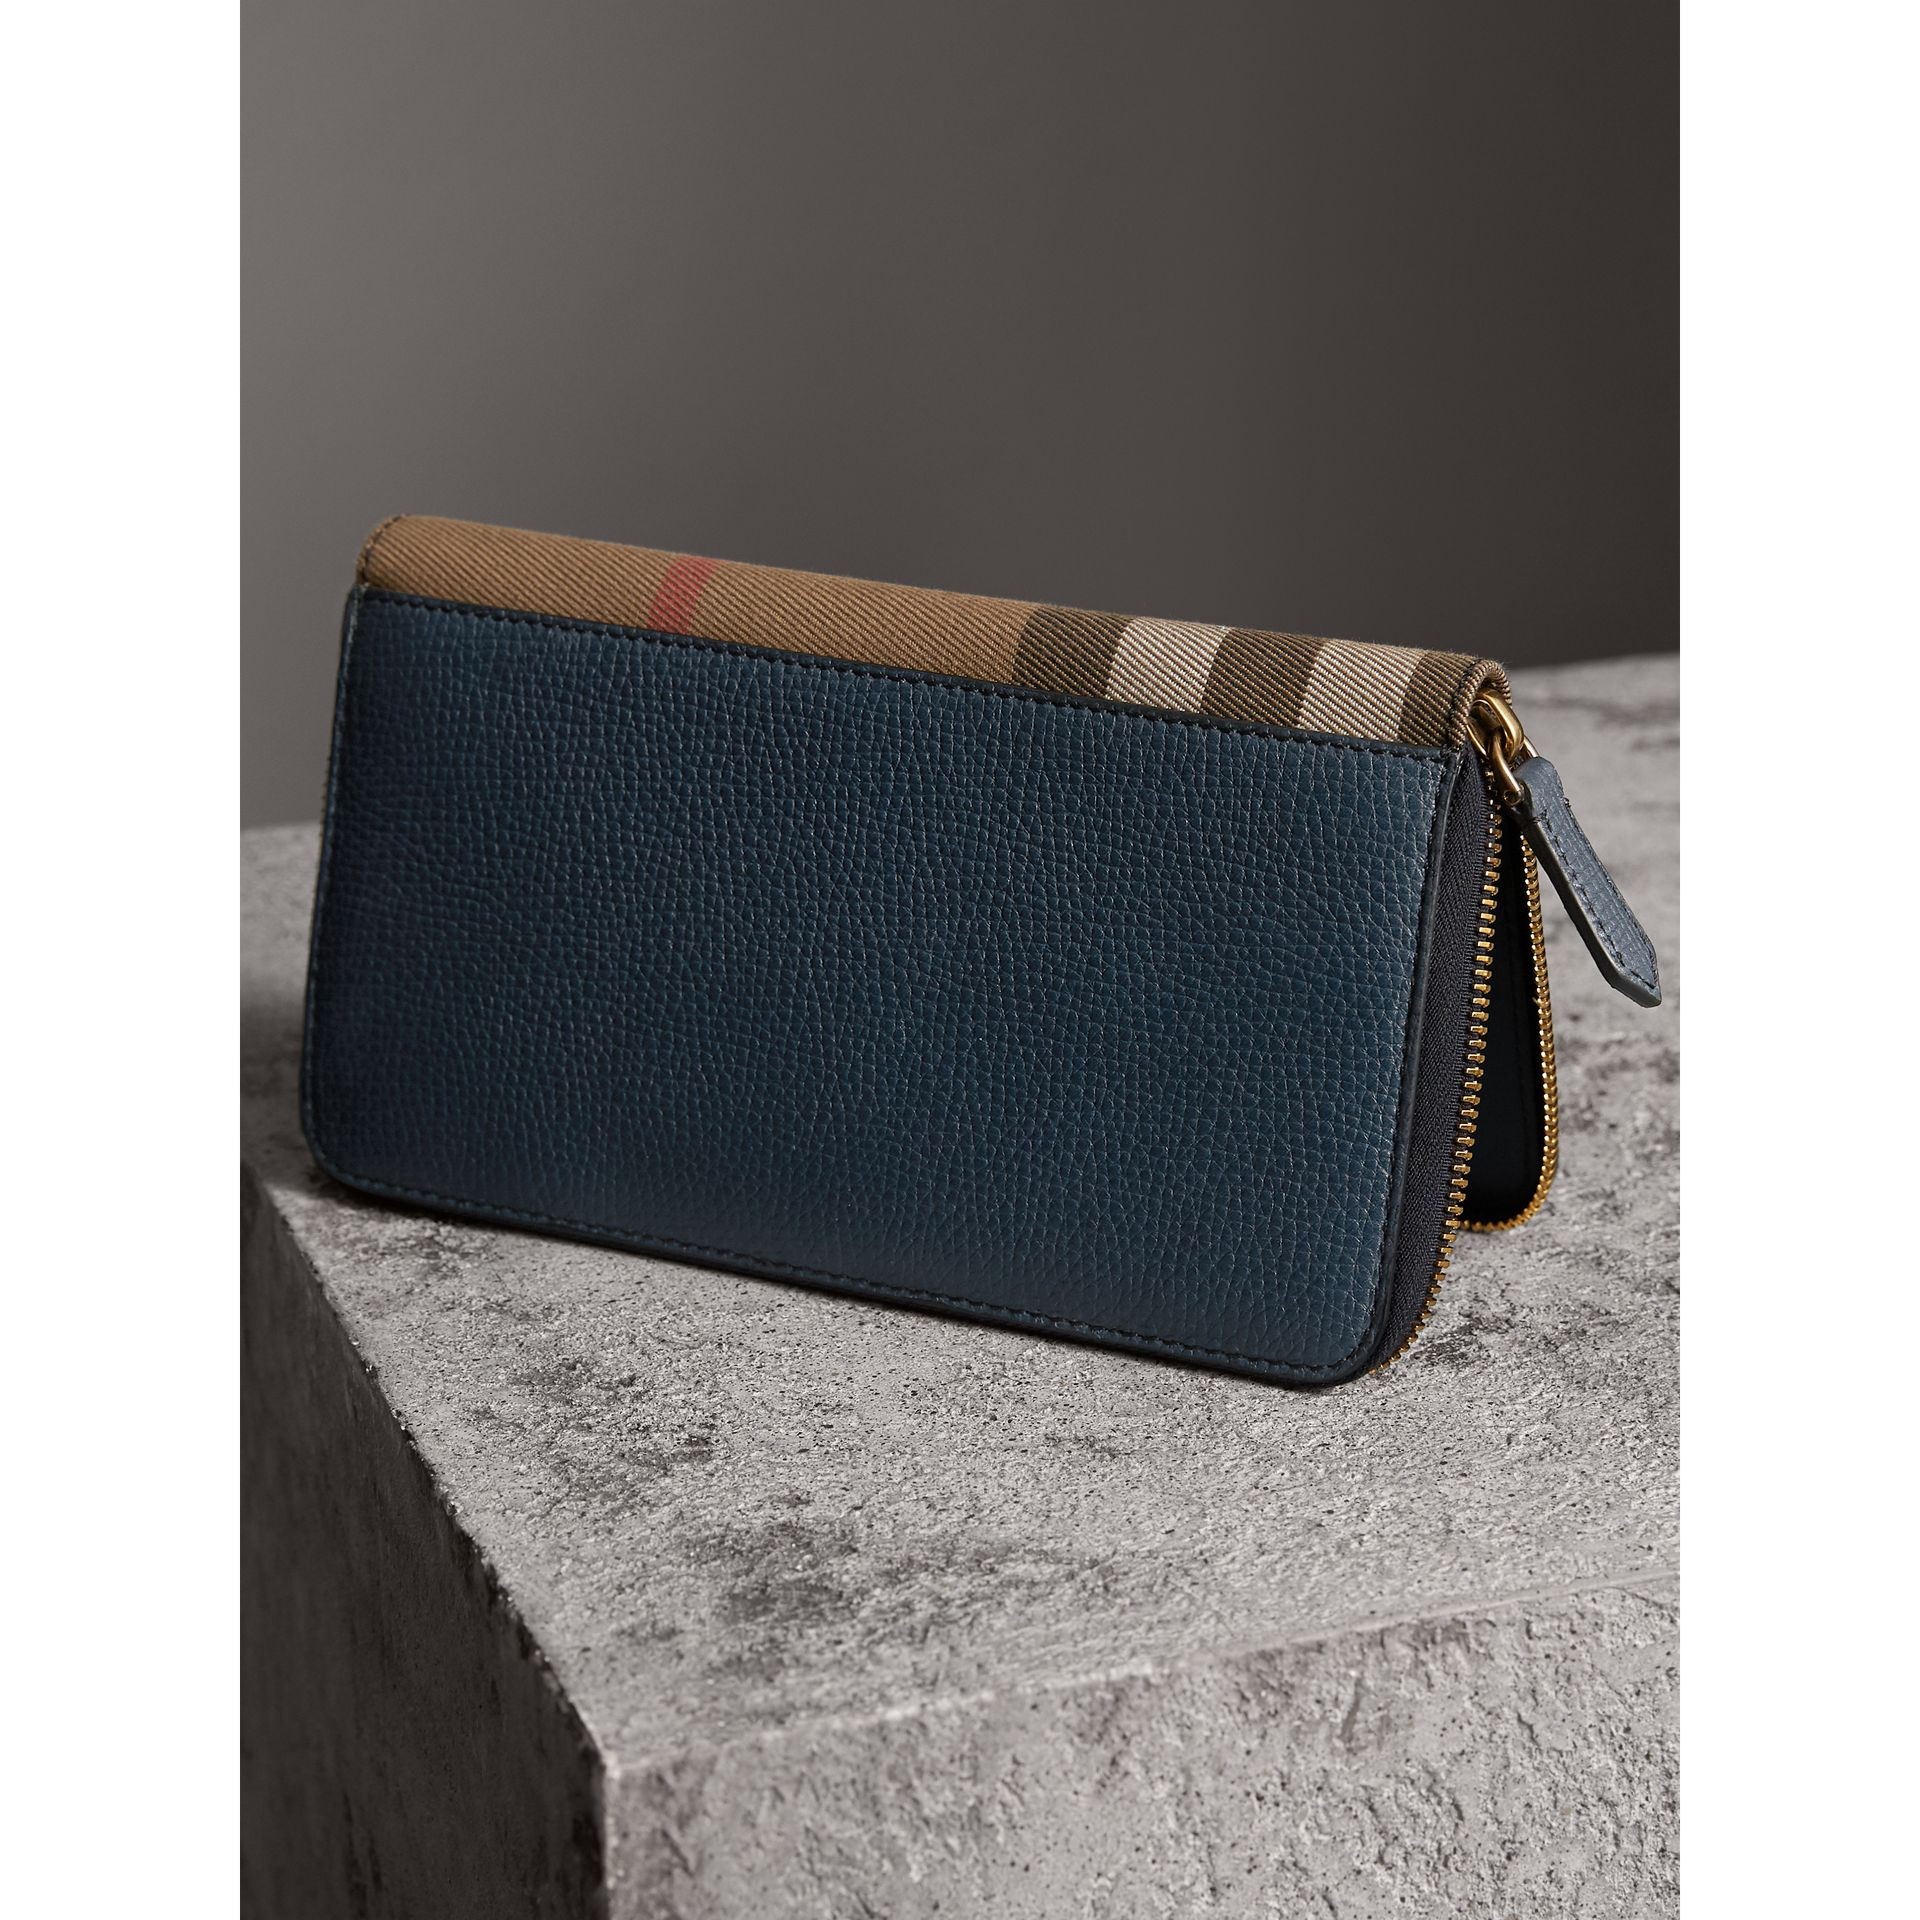 House Check and Grainy Leather Ziparound Wallet in Storm Blue | Burberry - gallery image 2